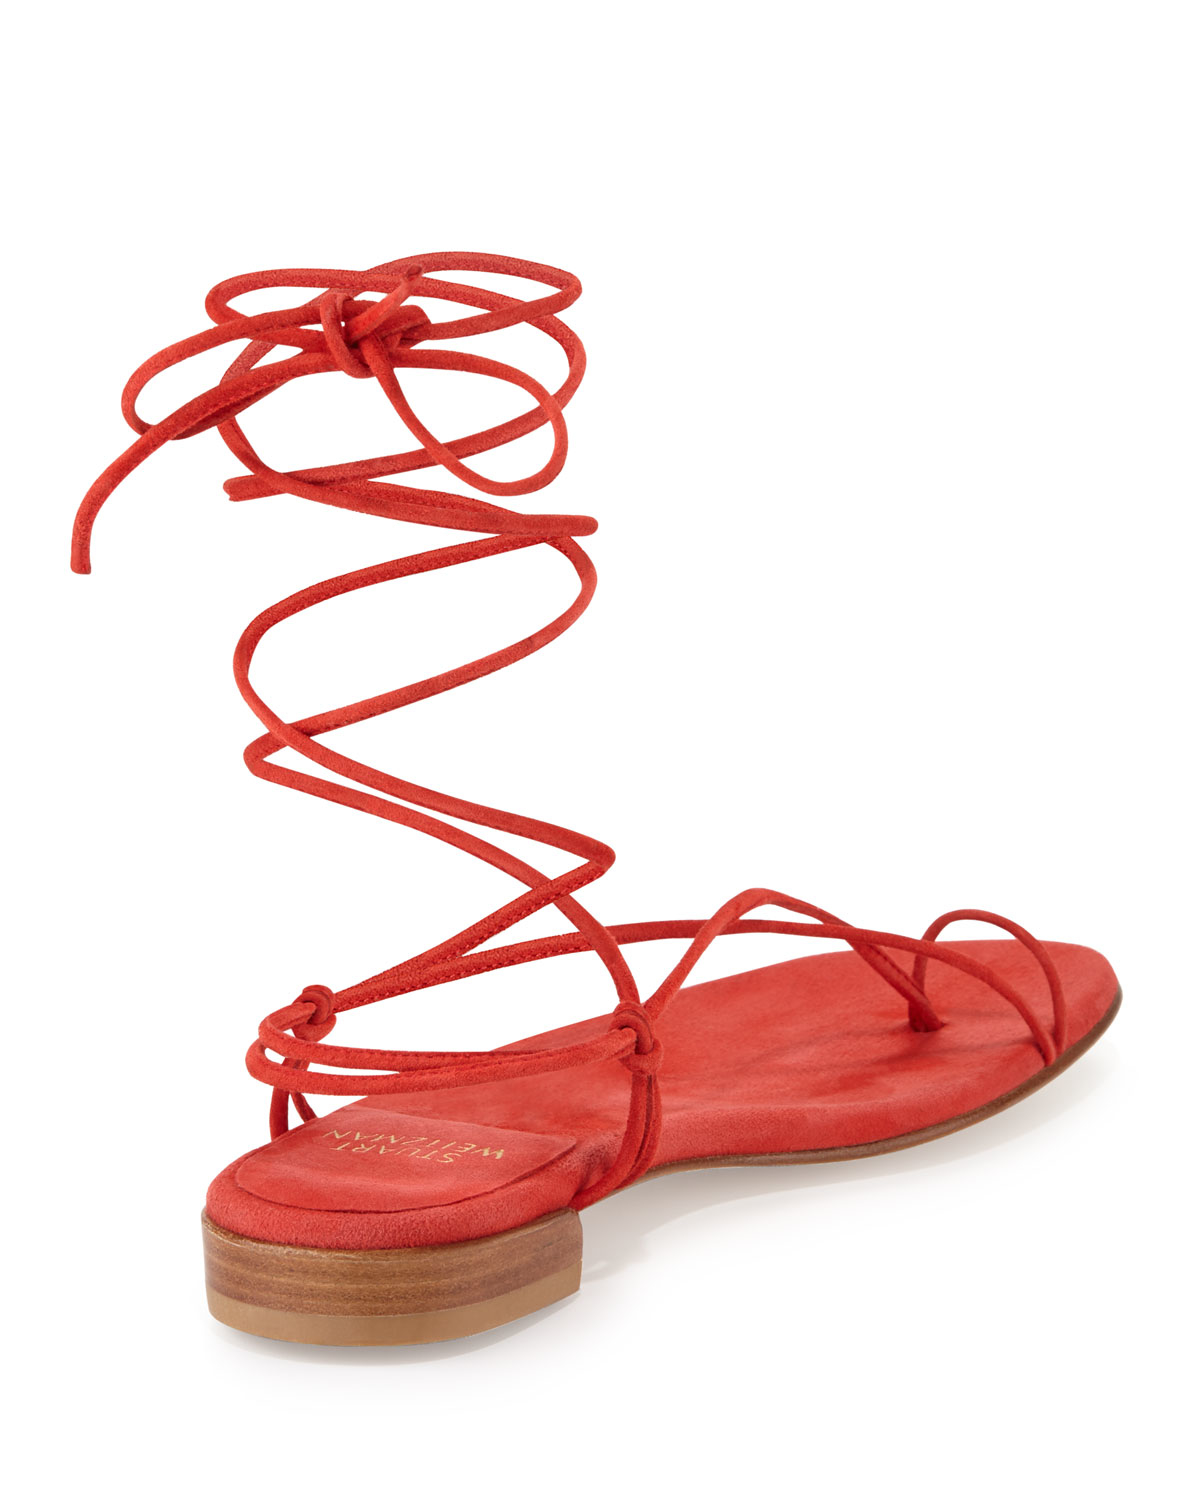 fb8fb06466ae6 Red Lace-up Sandals | CraftySandals.com